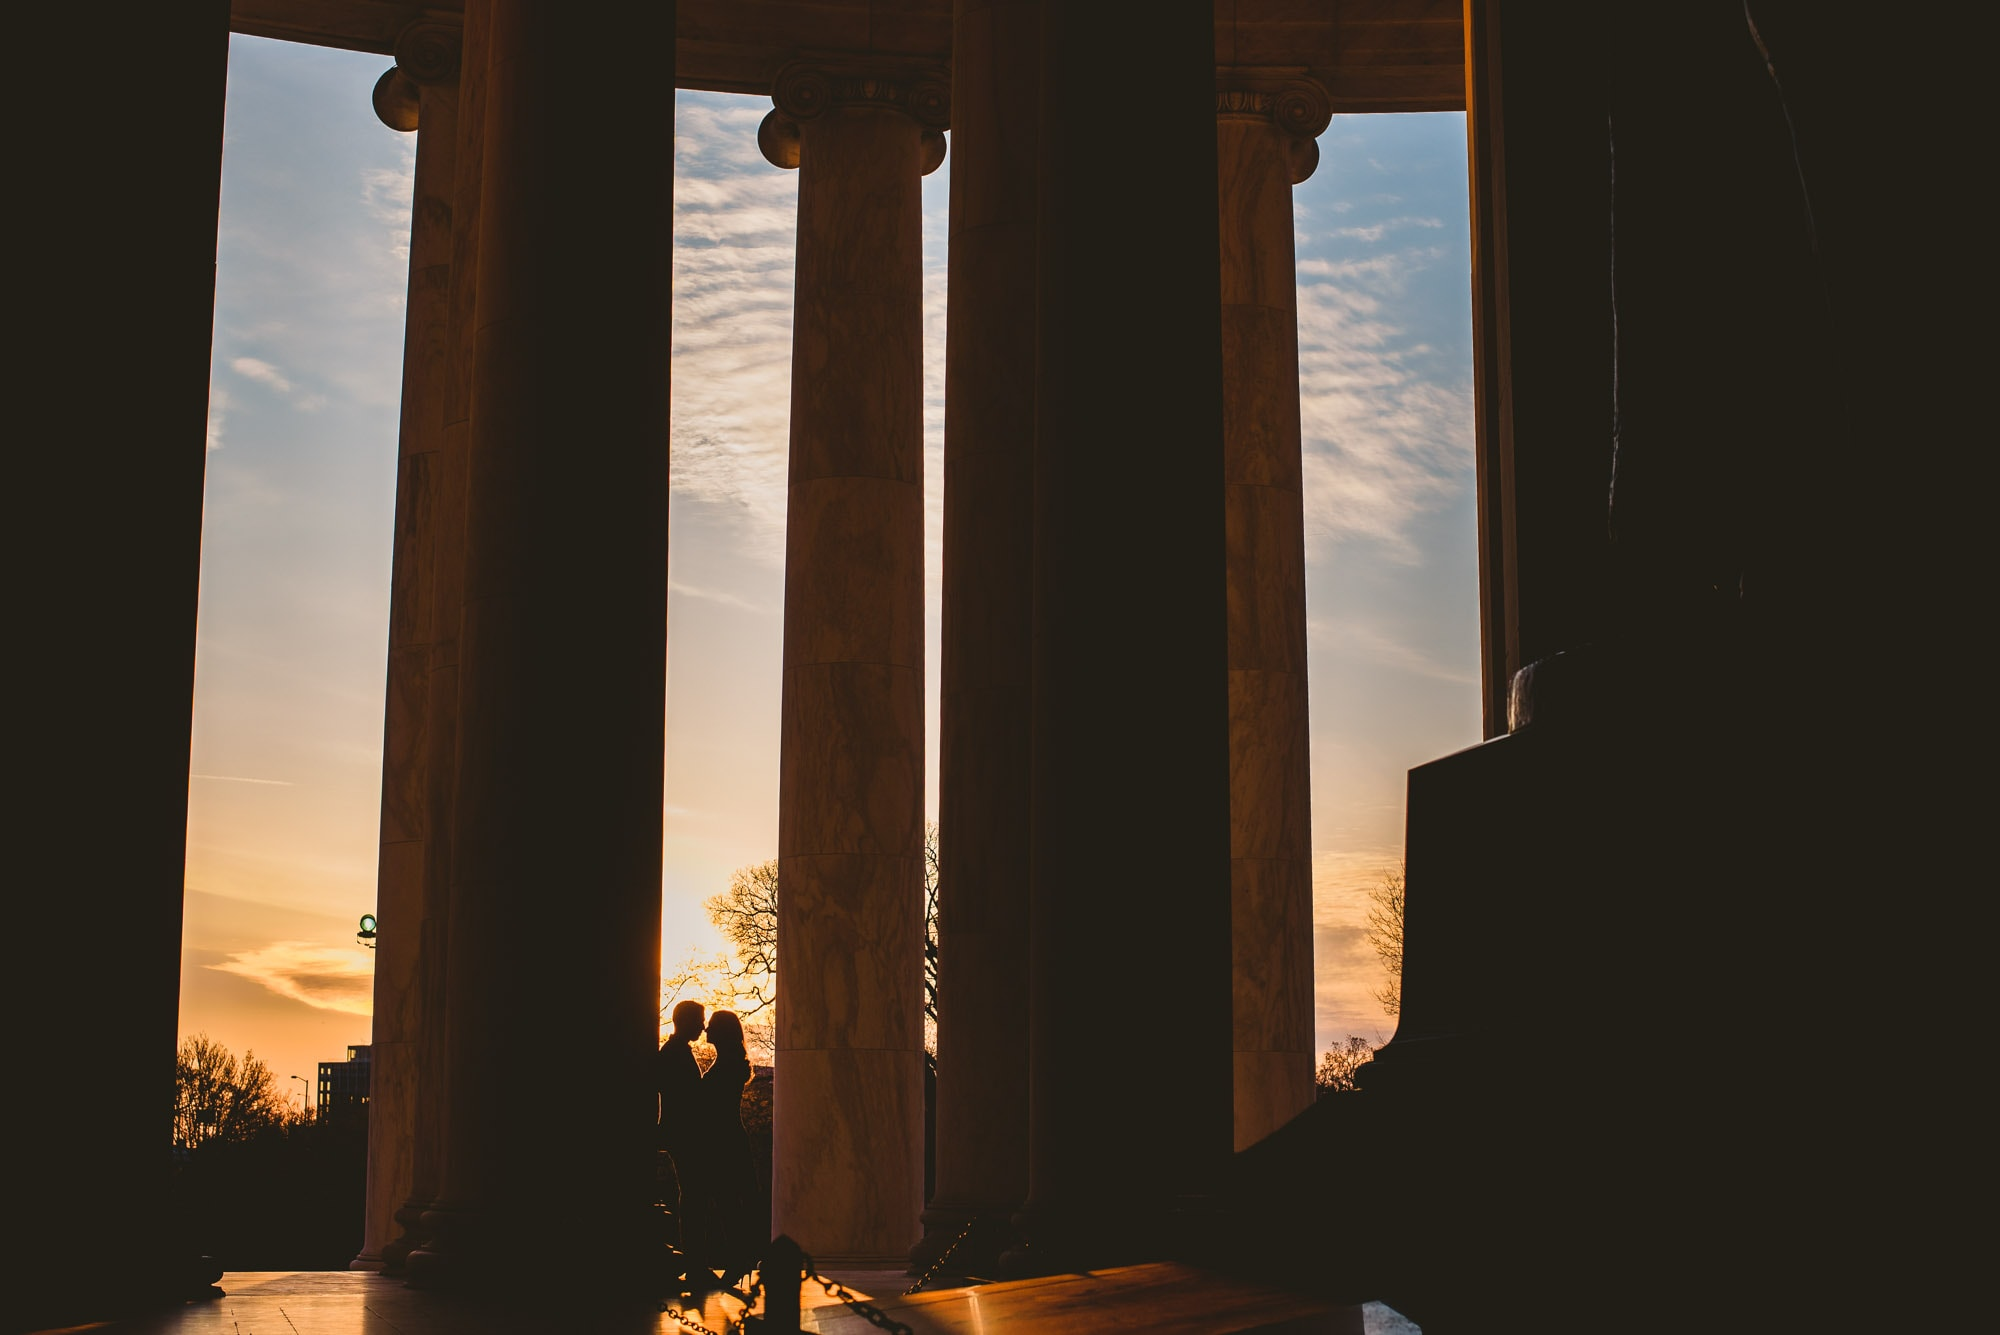 Sunrise silohuette of engaged couple at the Jefferson memorial in Washington DC